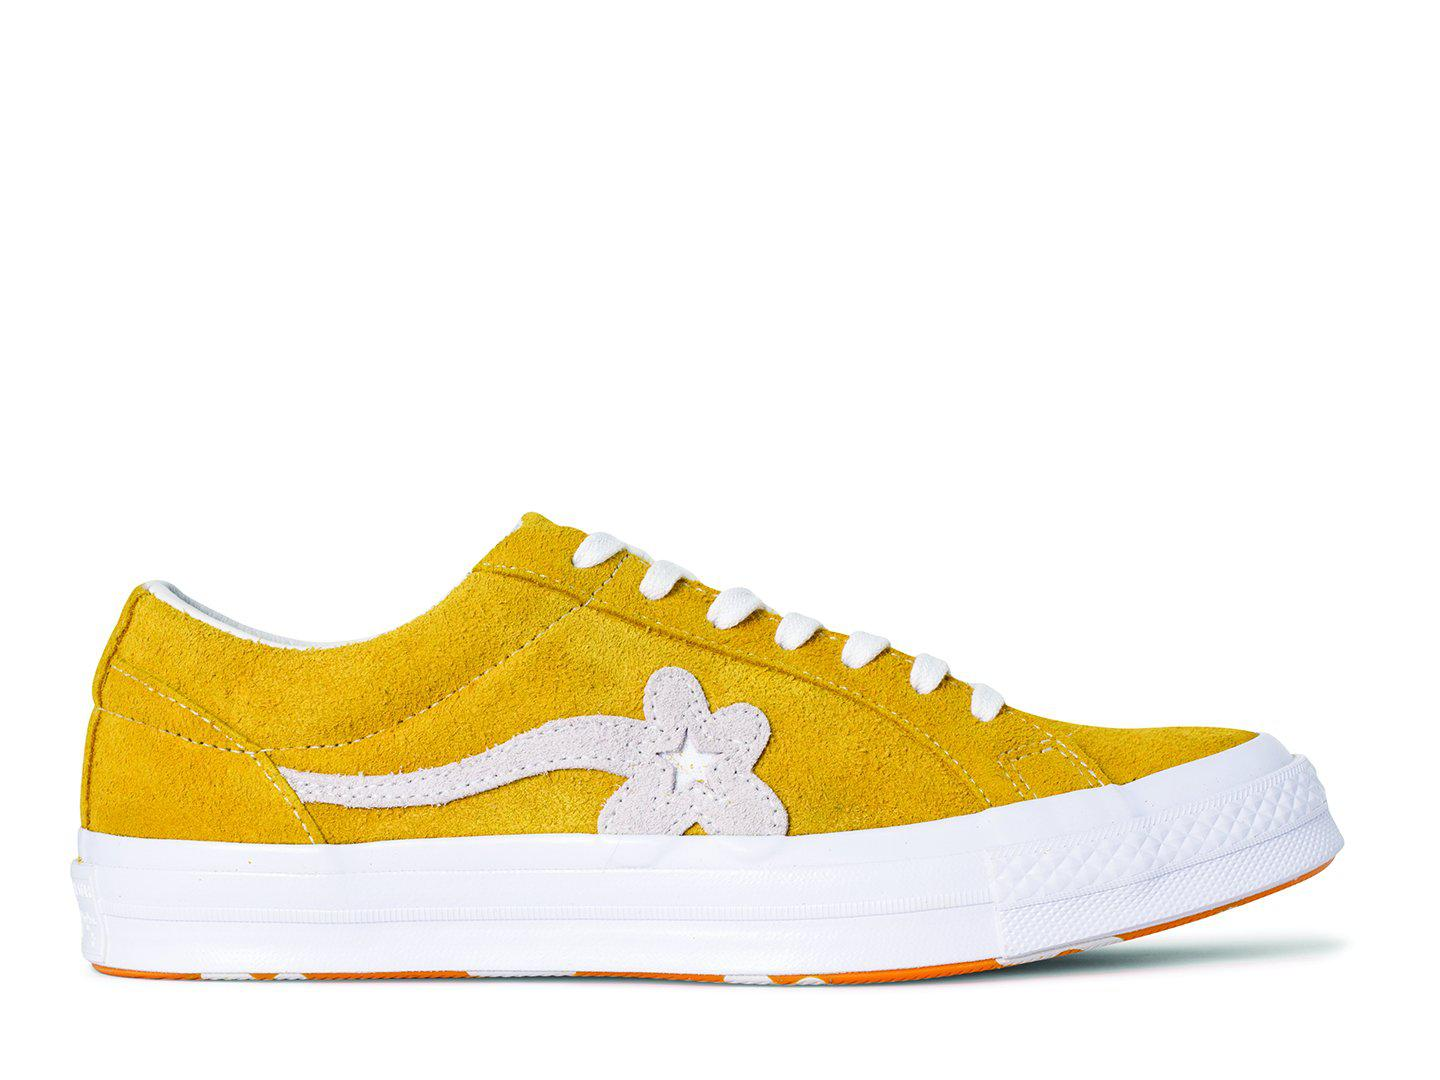 Desfiladero grua Tranquilizar  Converse Suede One Star X Golf Le Fleur in Yellow for Men - Lyst